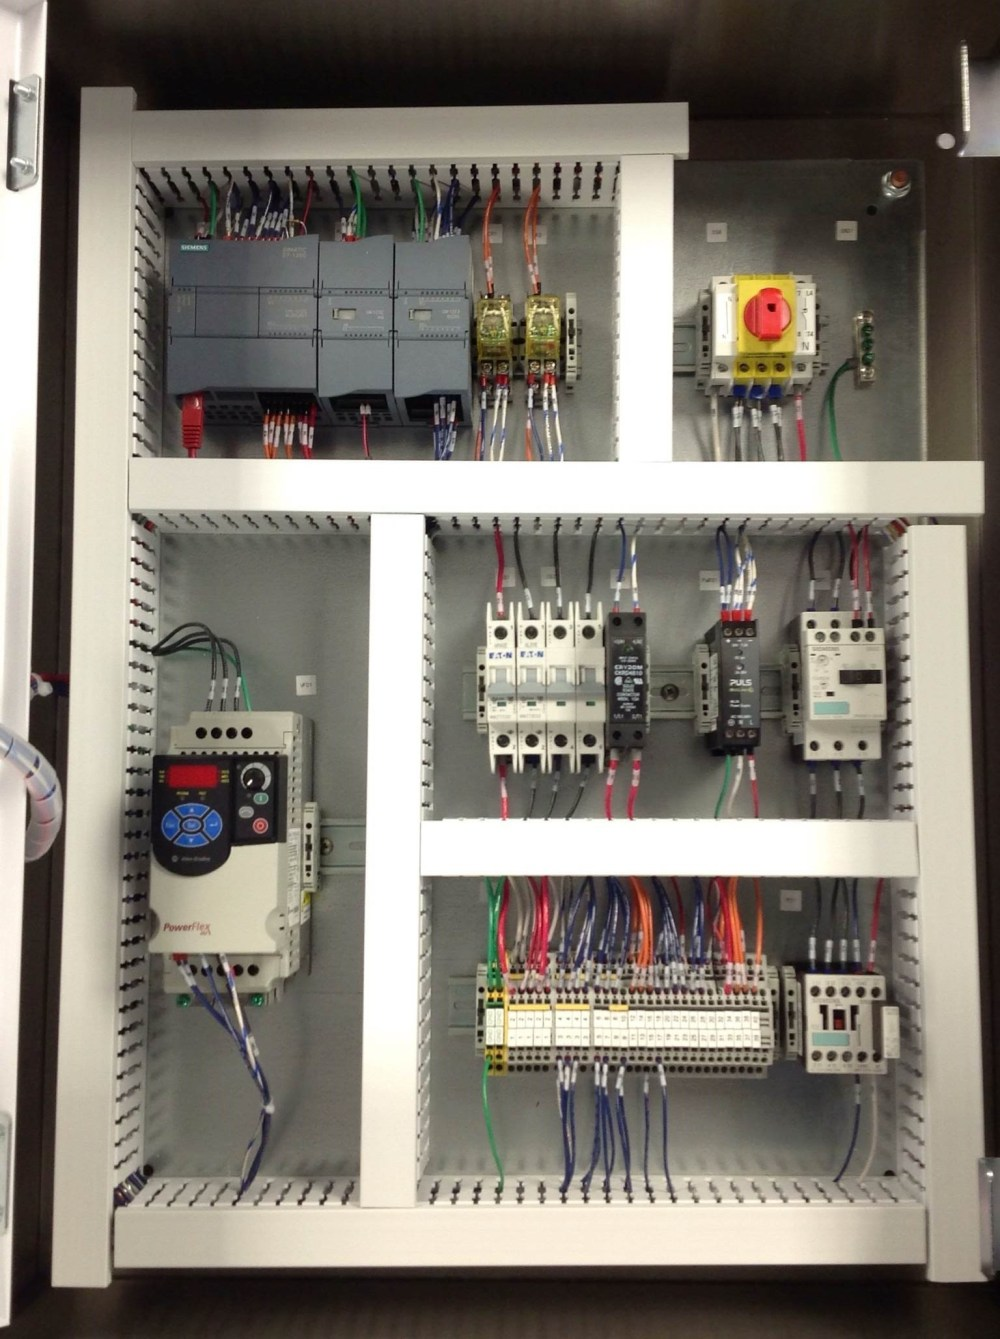 medium resolution of checking for non conformities on electrical panel